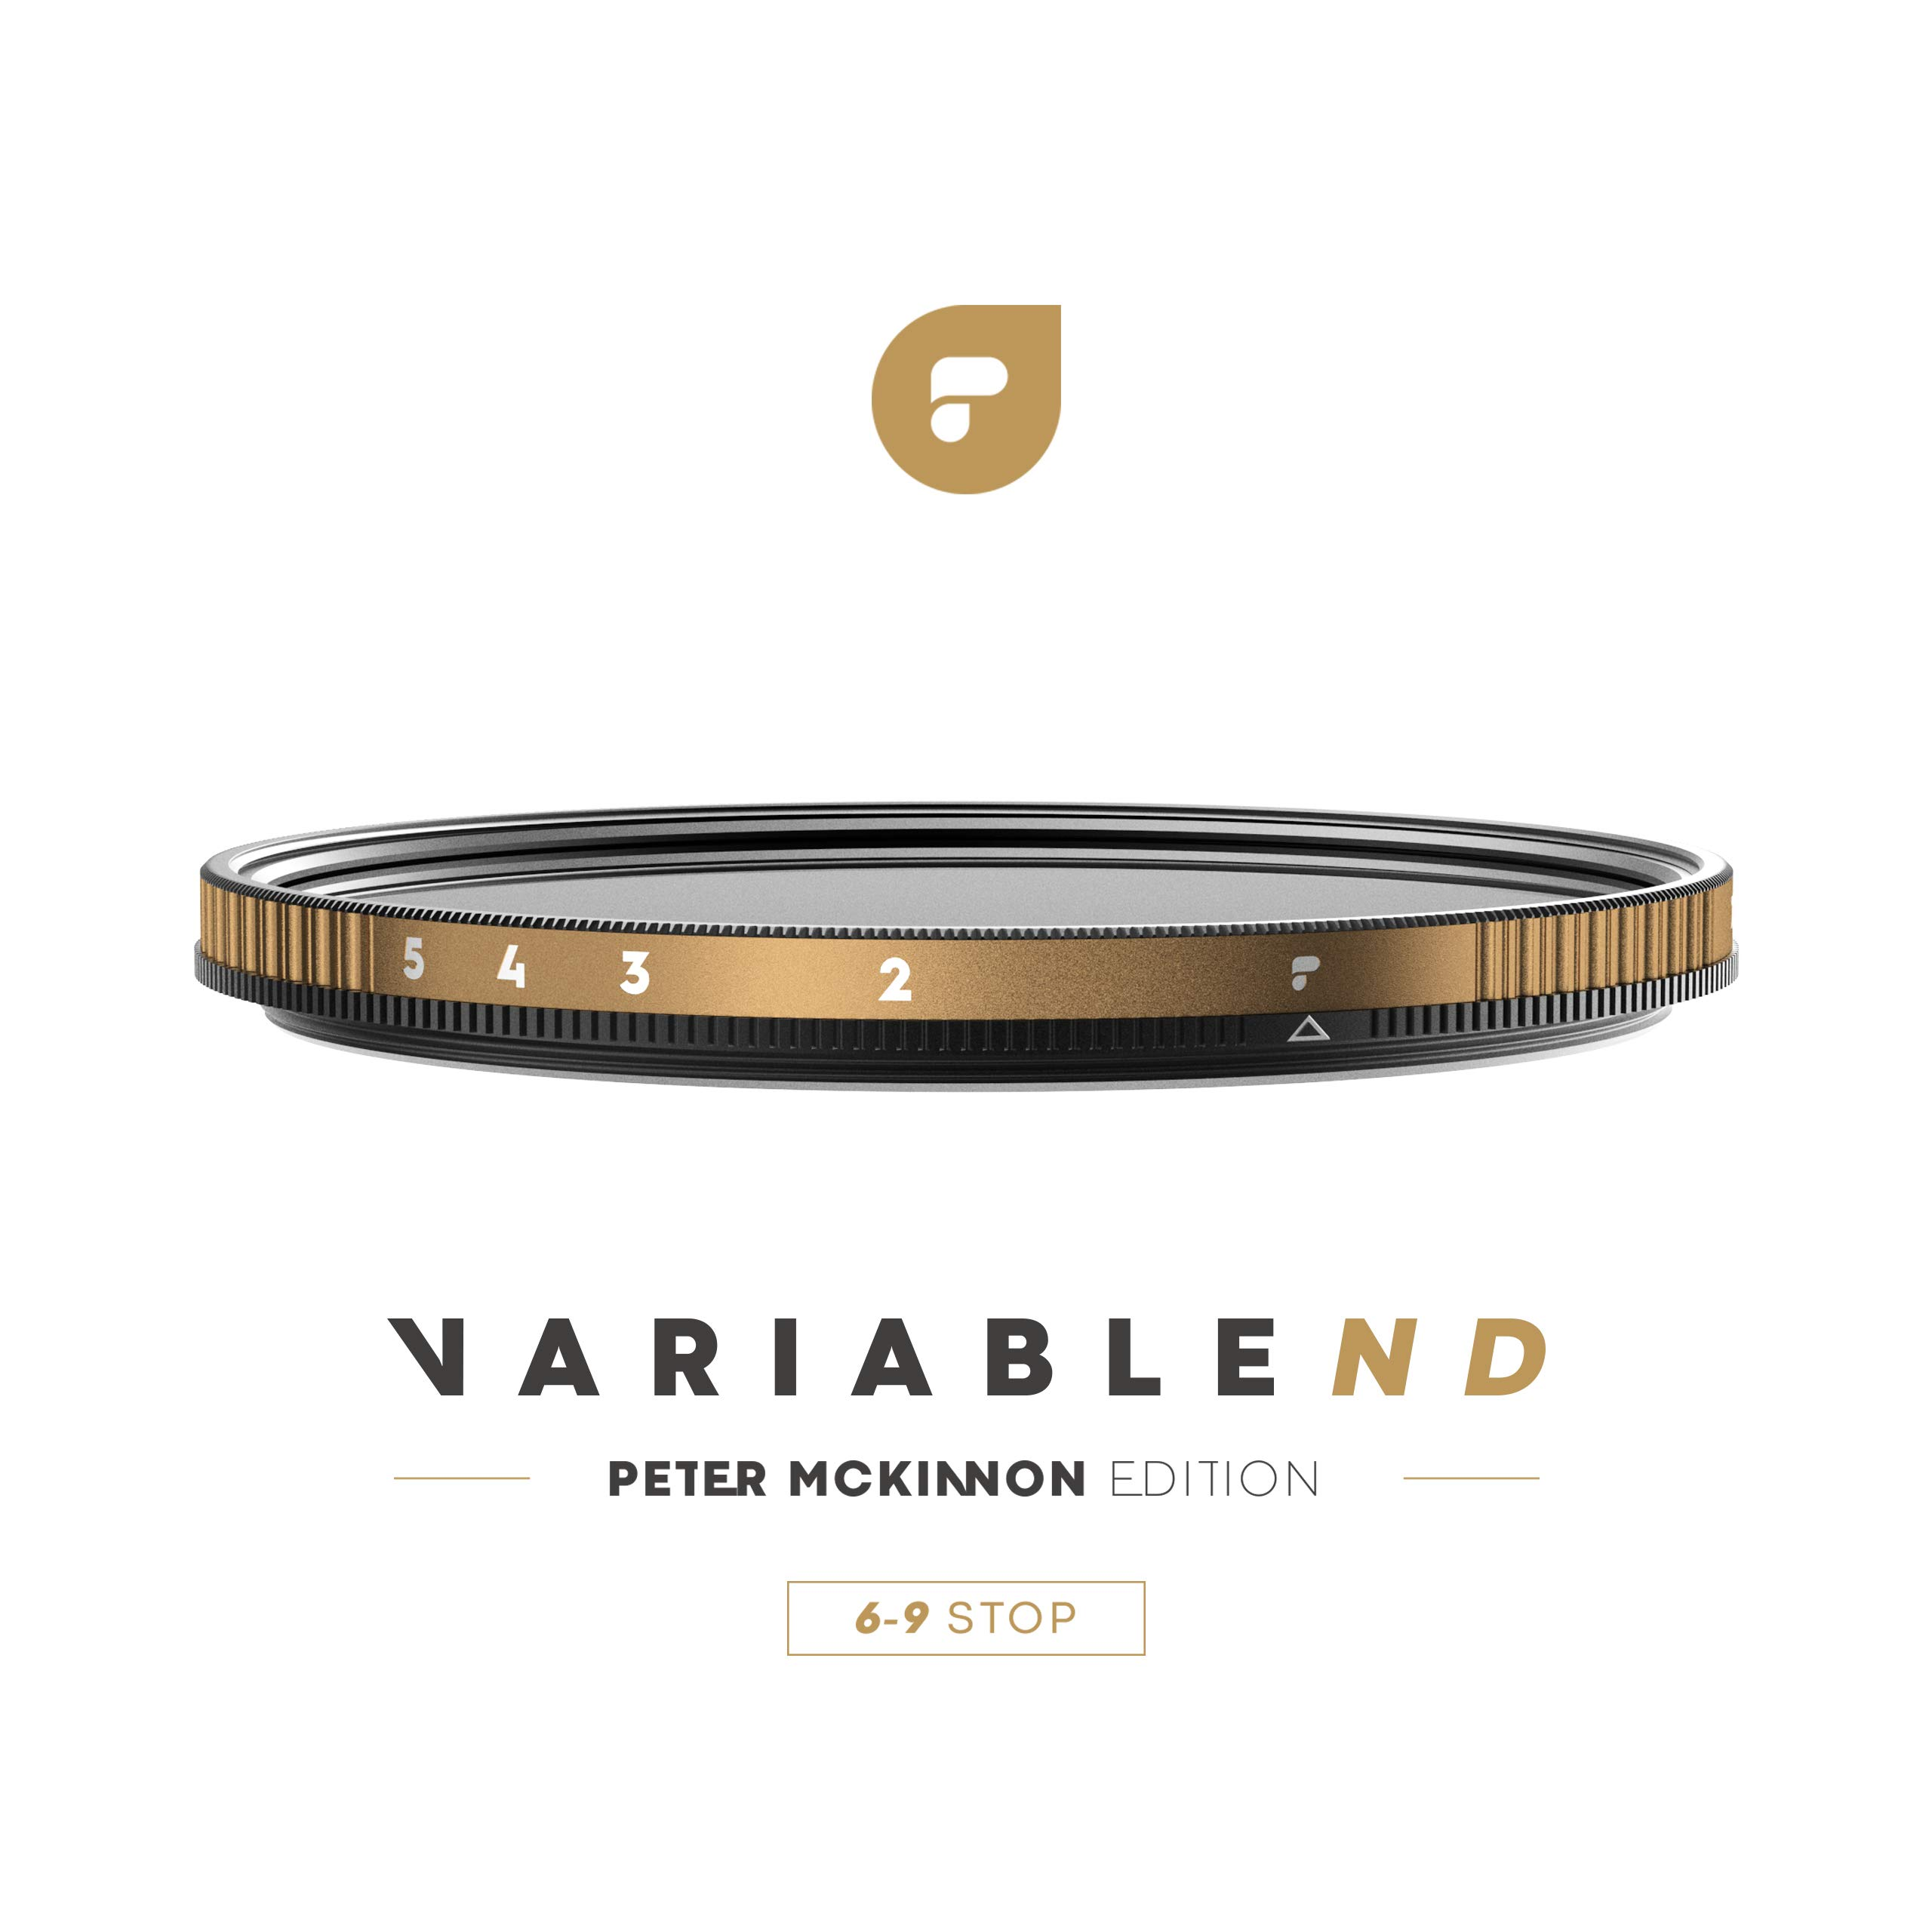 PolarPro 67mm Variable ND Filter (6 to 9 Stop) - Peter McKinnon Edition by PolarPro